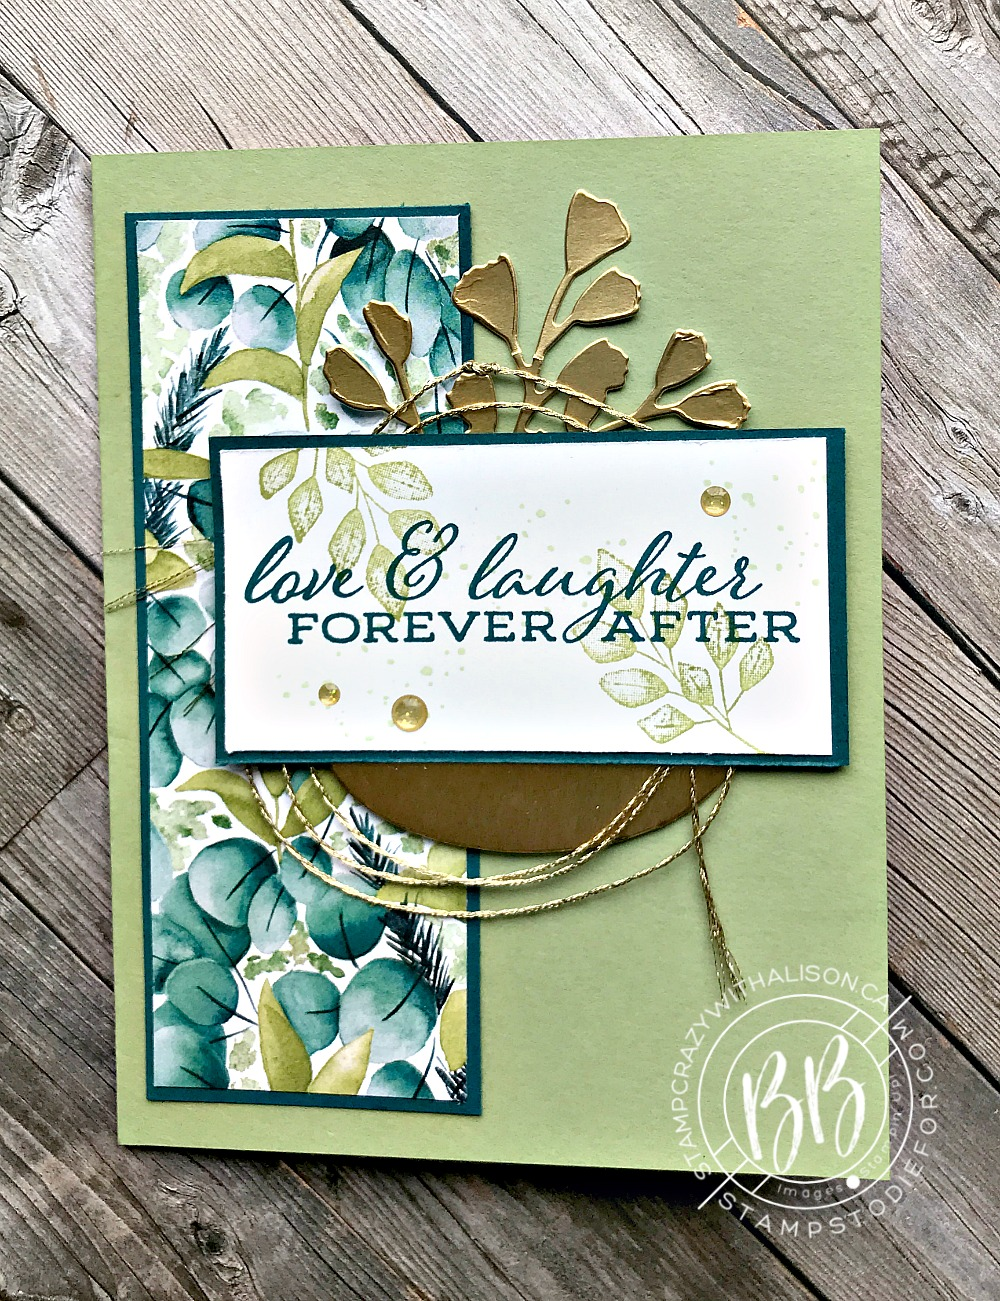 Sunday Sketches with Forever Greenery Suite from Stampin' Up!®